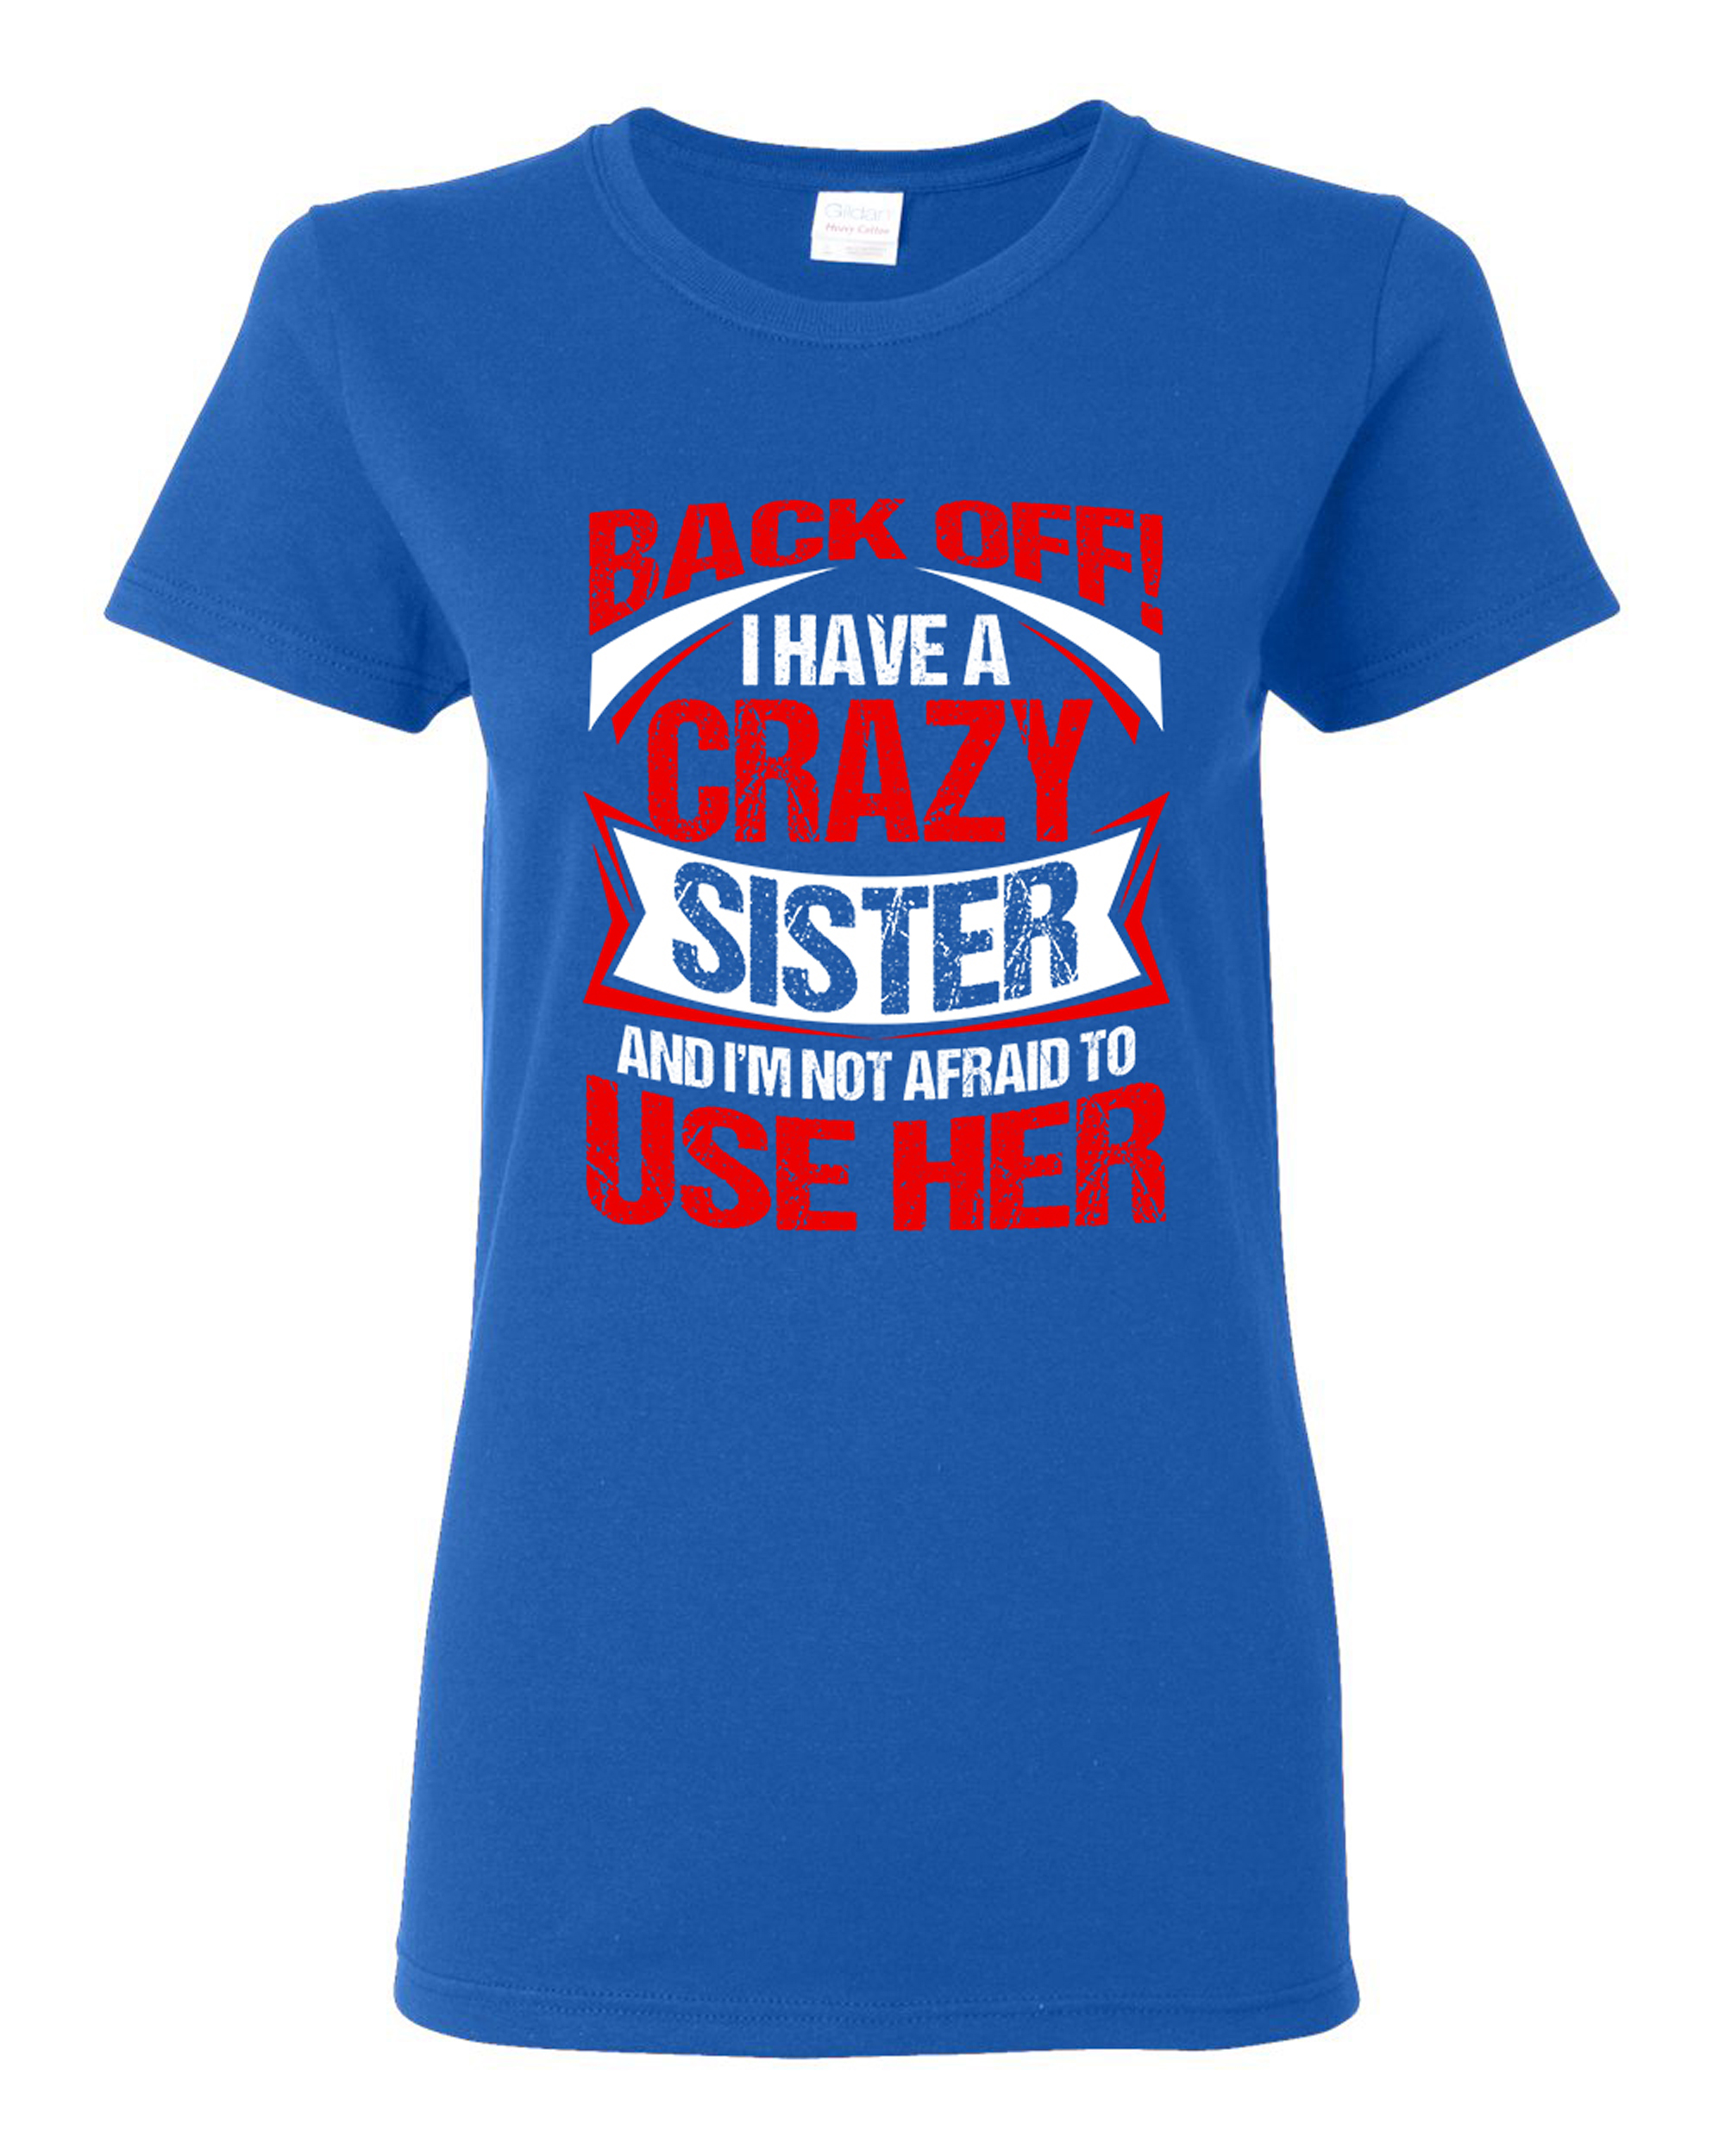 Ladies Back Off I Have A Crazy Sister I'm Not Afraid To Use Her DT T-Shirt Tee